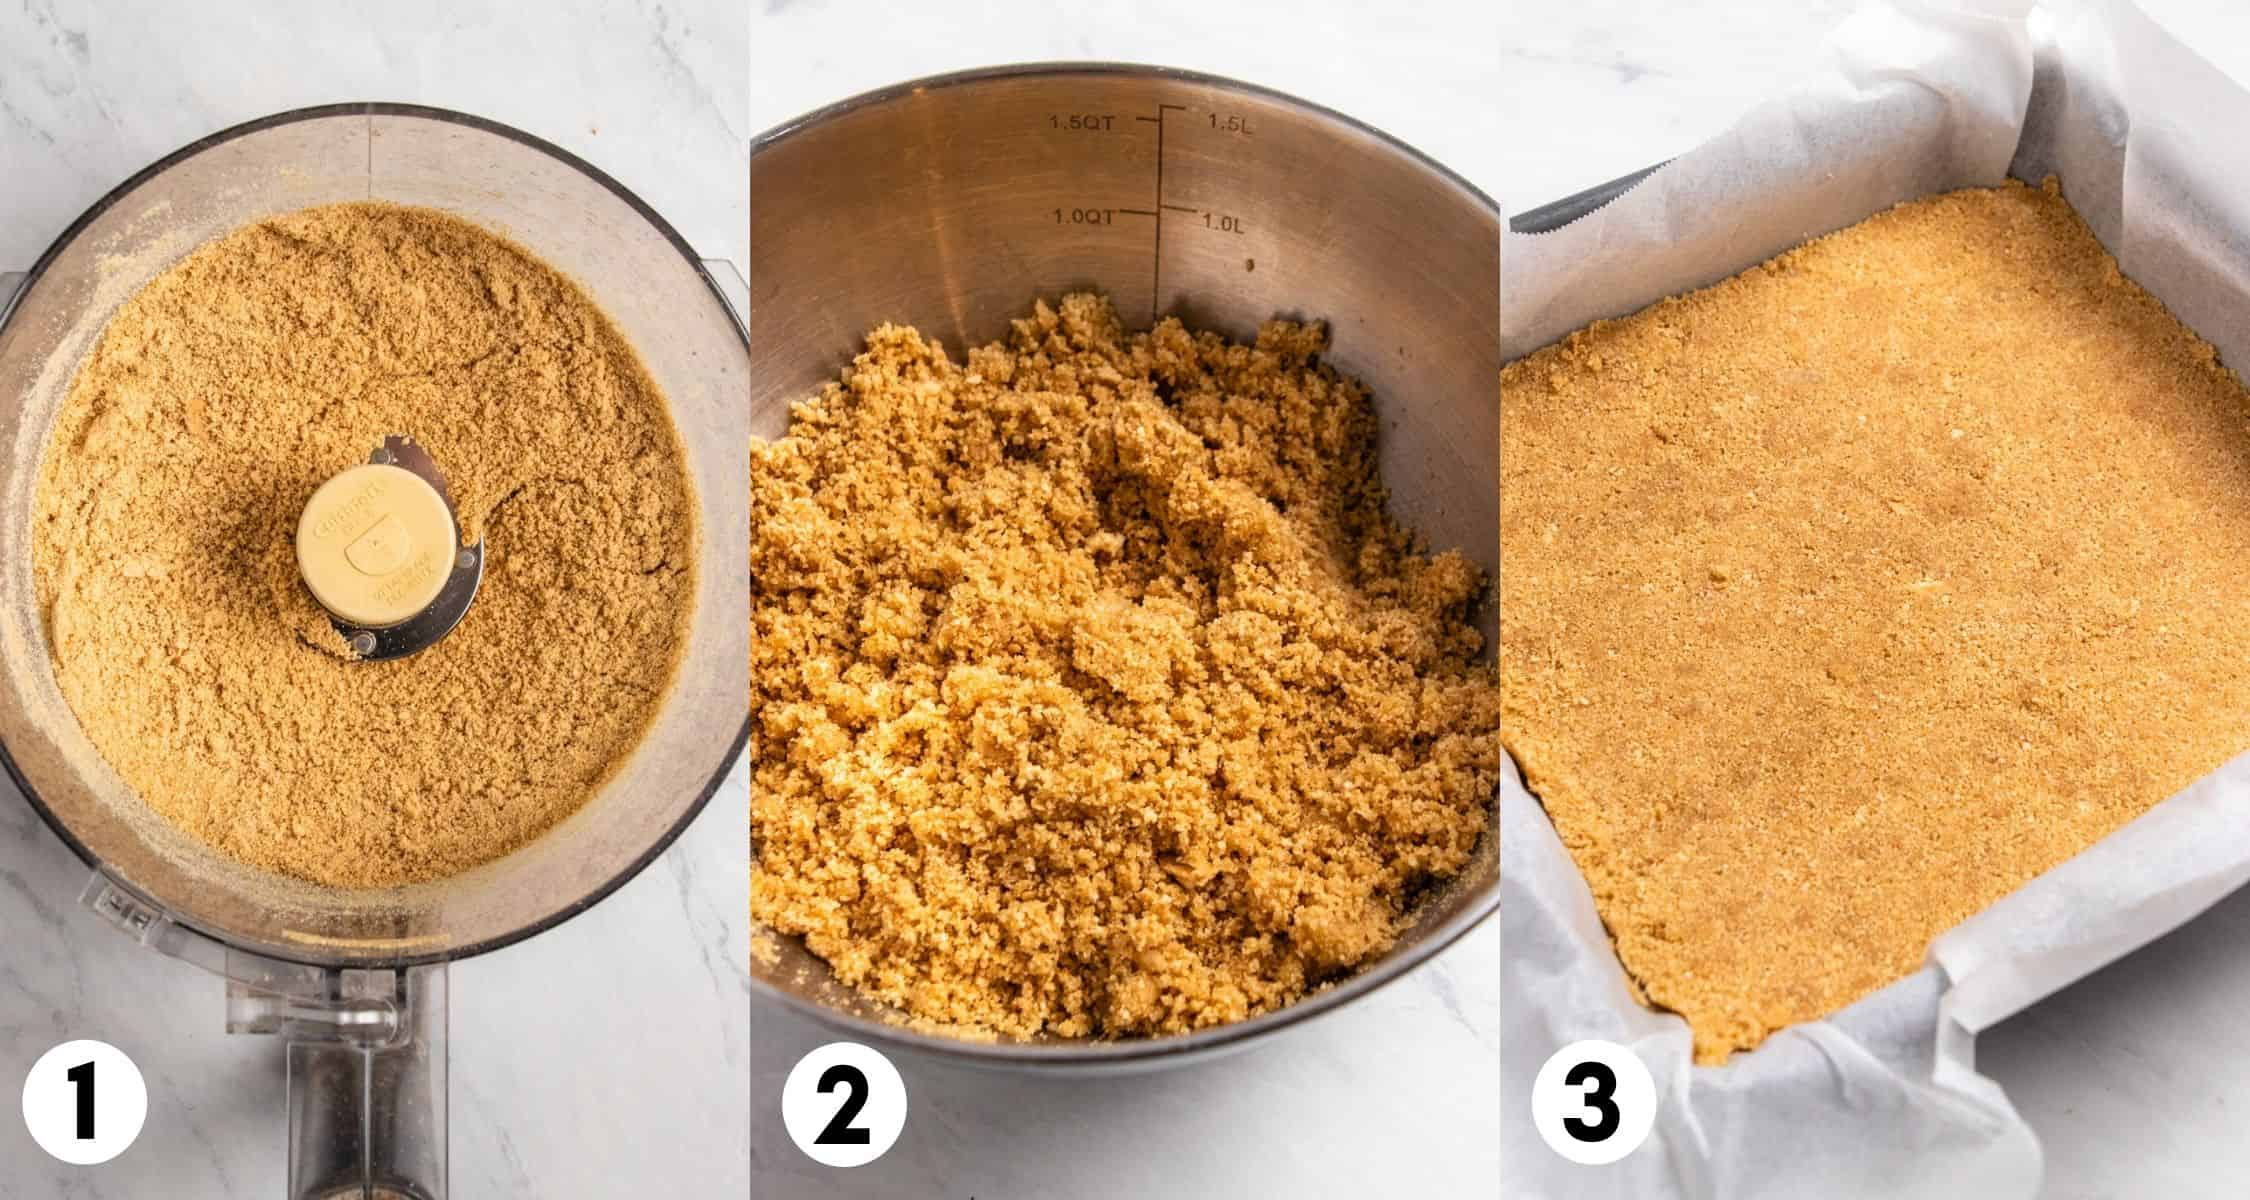 Graham crackers processed in food processor and then in bowl with butter. Last image shows crust pressed into pan.